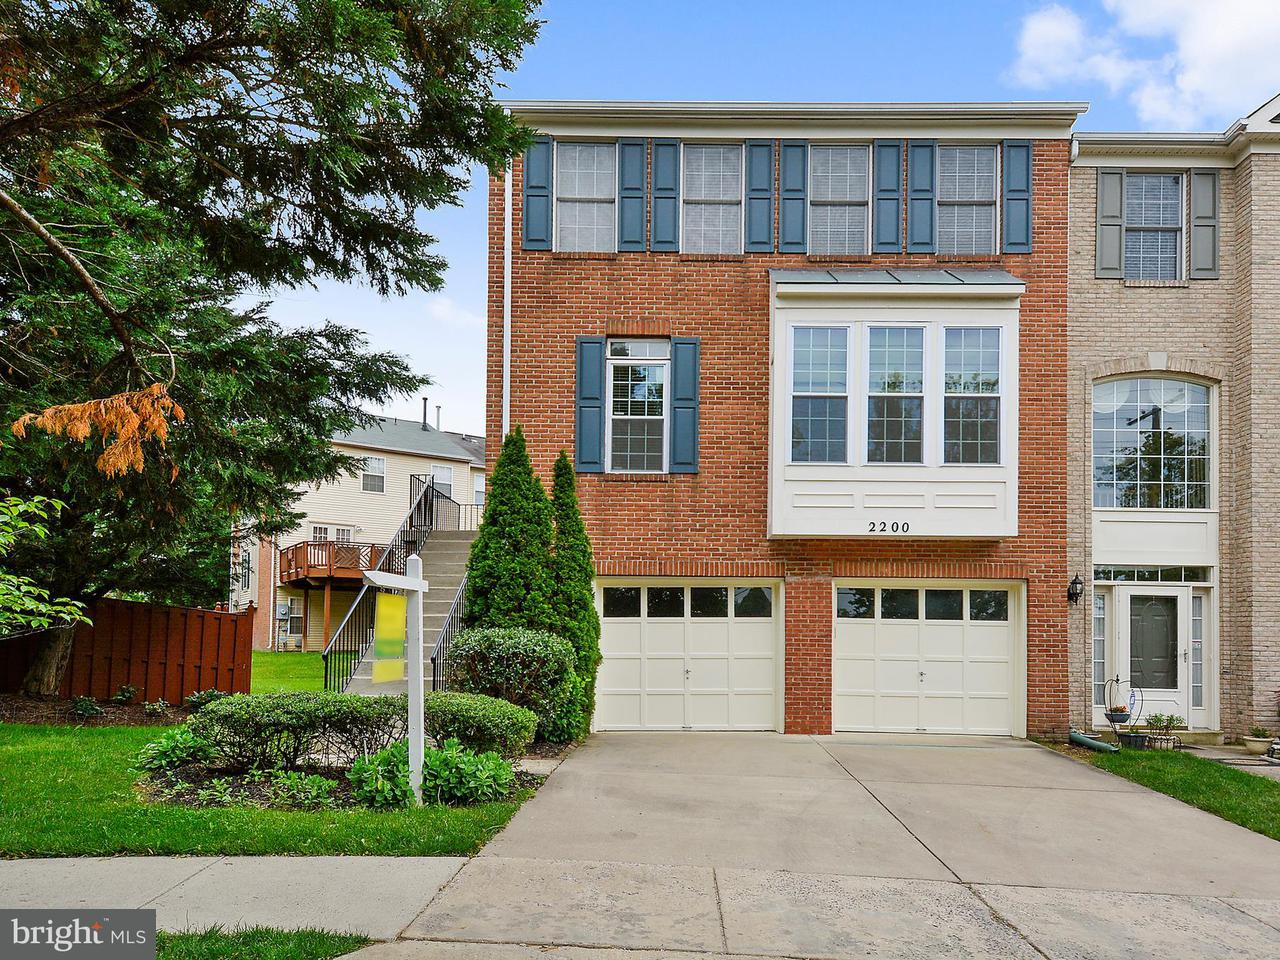 Townhouse for Sale at 2200 MEARS Lane 2200 MEARS Lane Silver Spring, Maryland 20906 United States